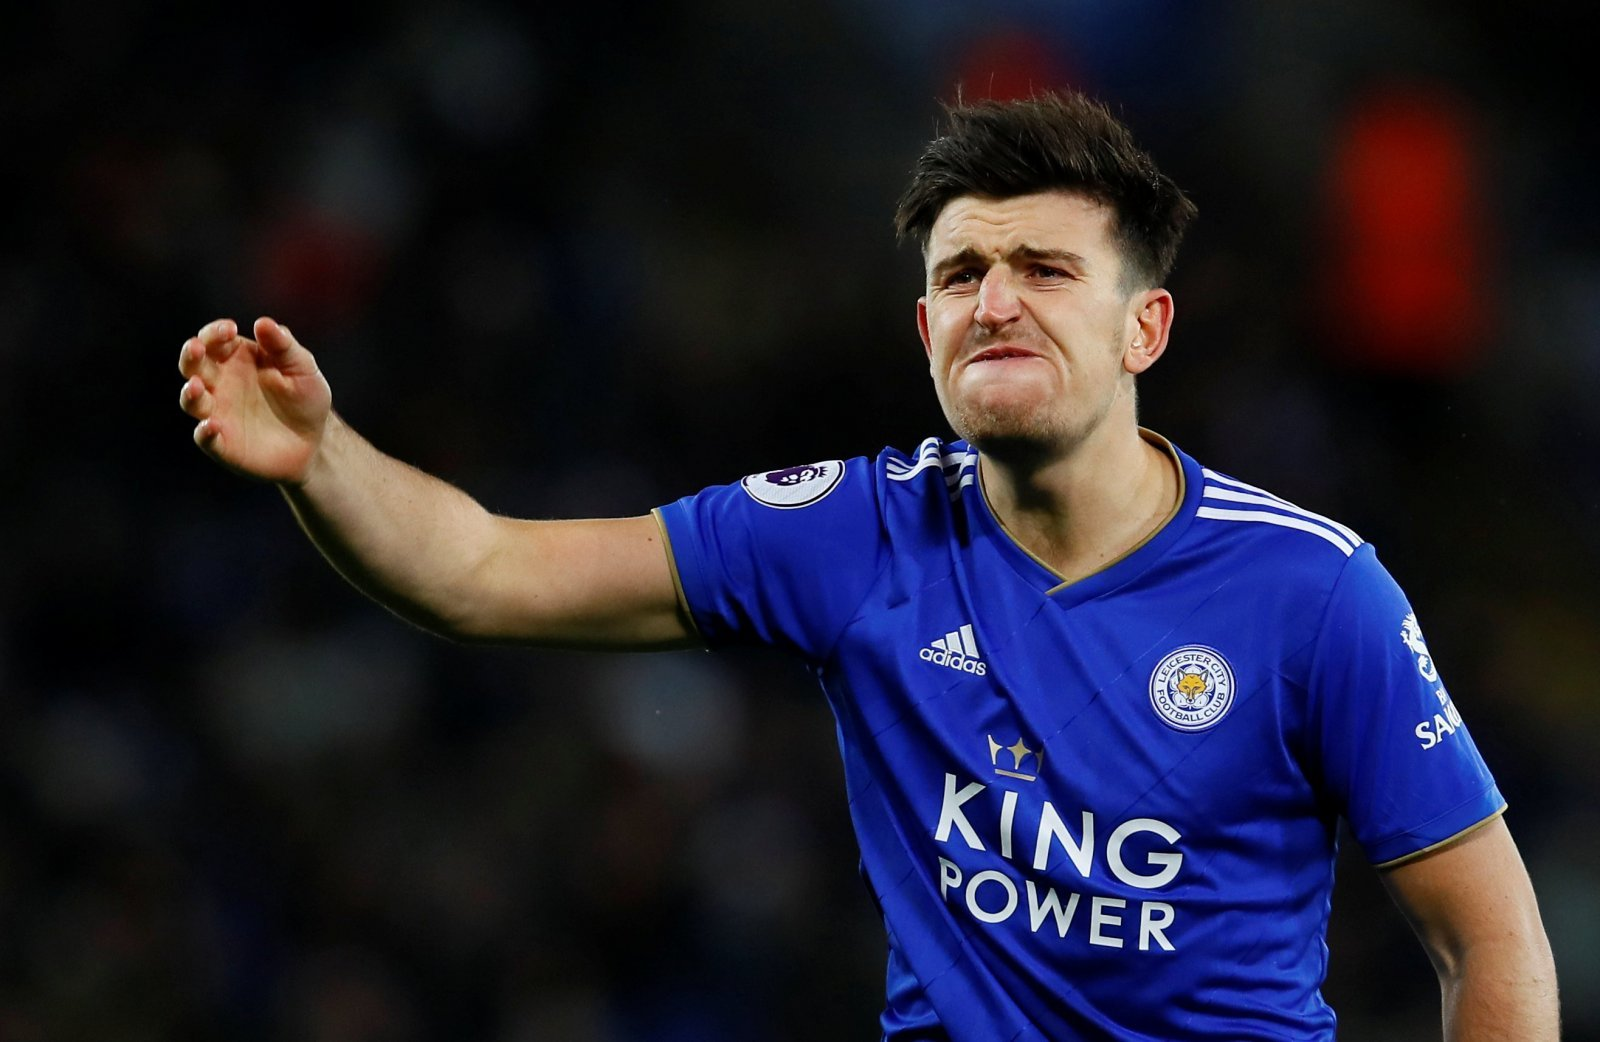 Manchester United: Transfer fee for Harry Maguire agreed